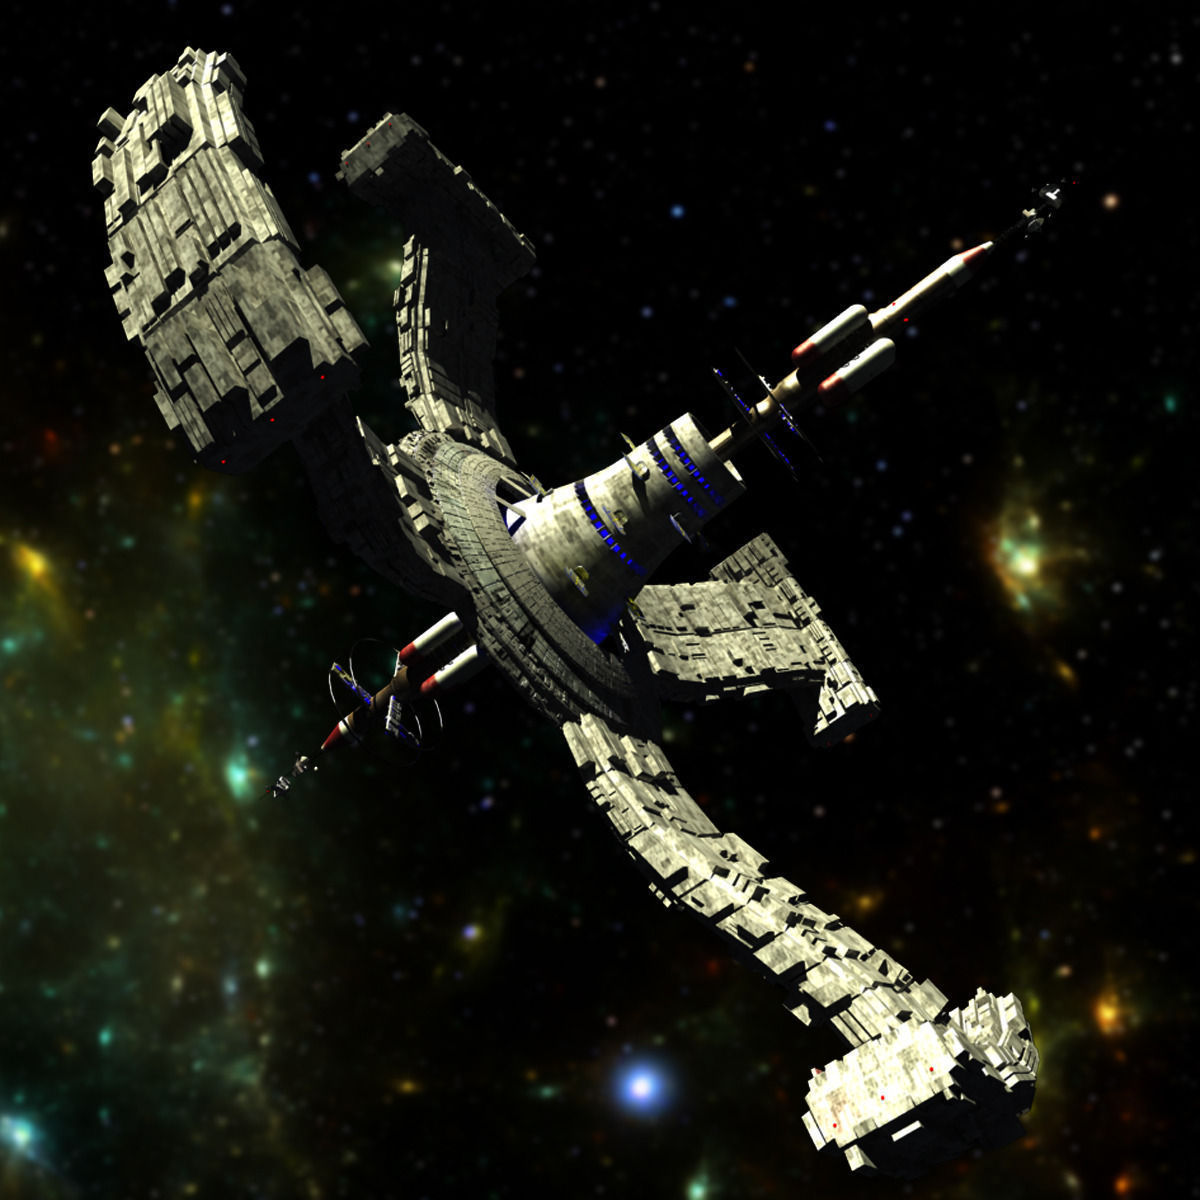 space station 3d models - photo #14